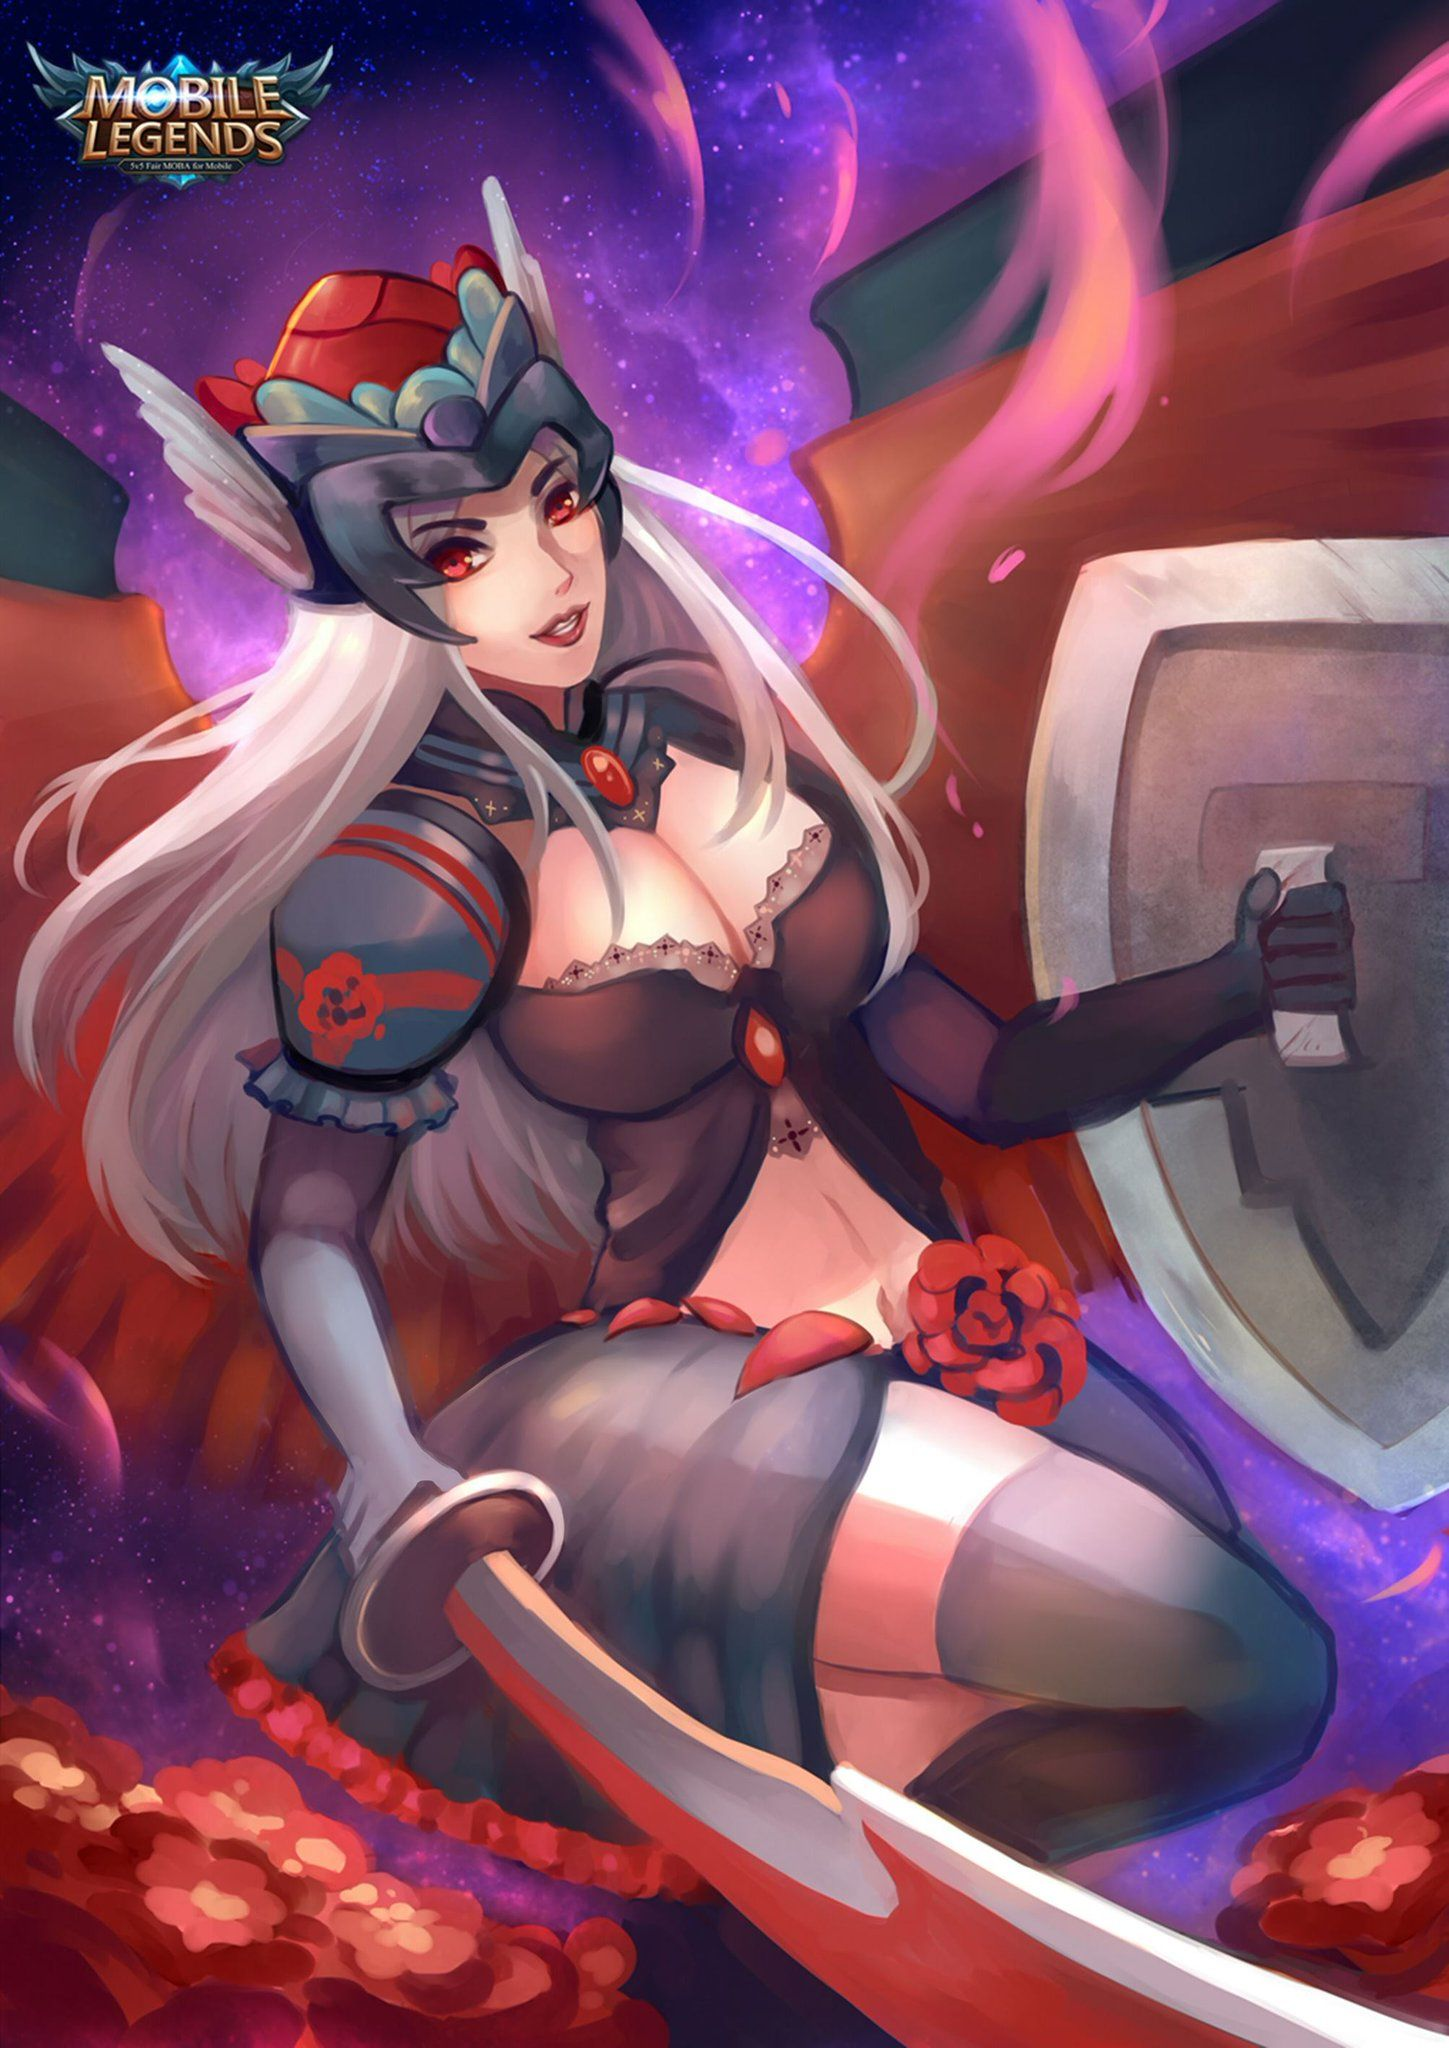 Wallpaper-Mobile-Legends-Freya-Dark-Rose